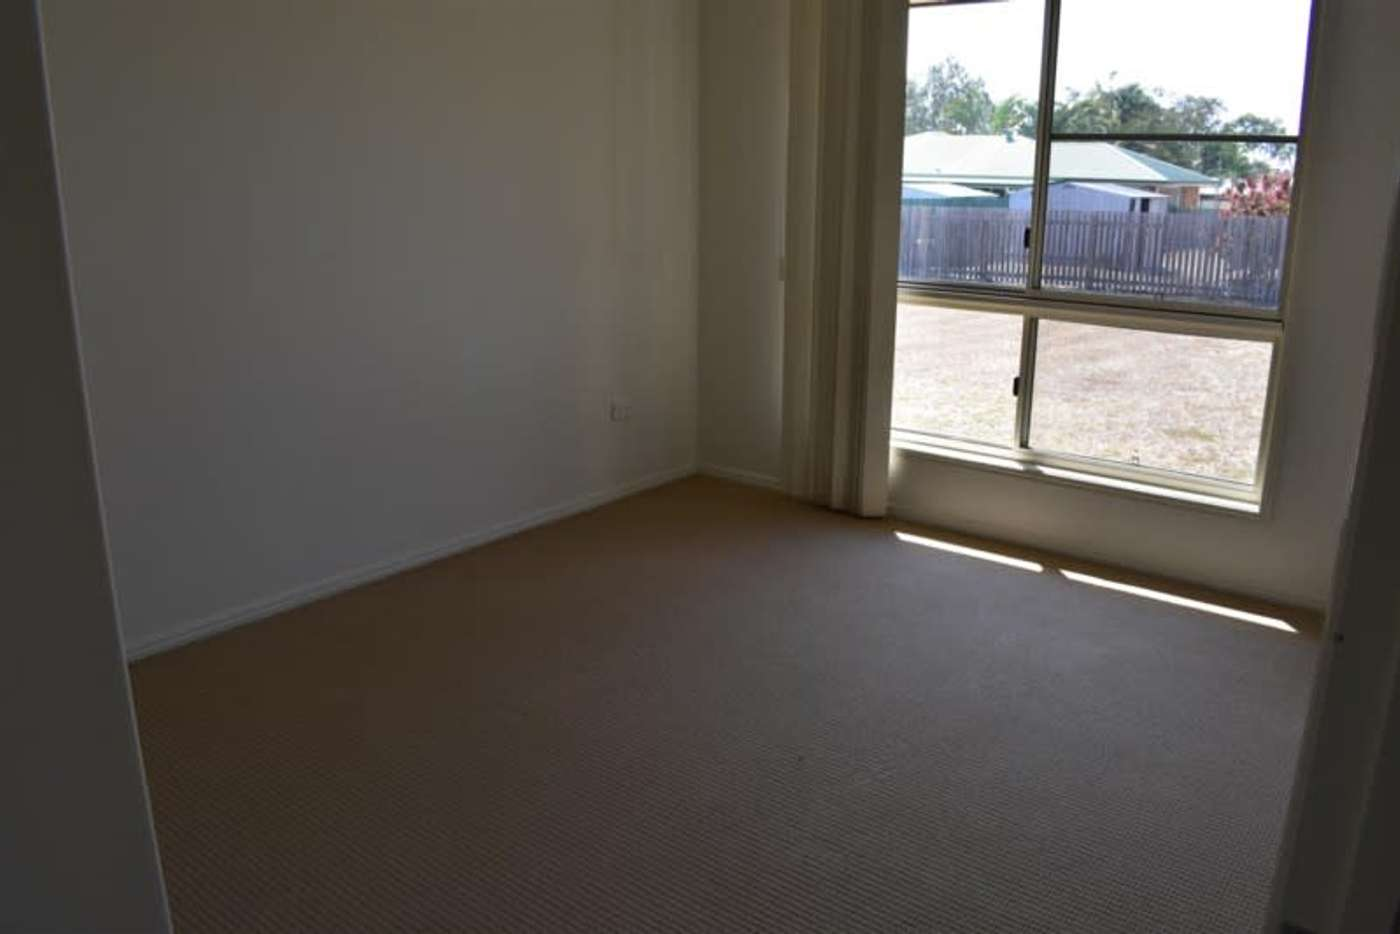 Sixth view of Homely house listing, 14 Conaghan Street, Gracemere QLD 4702